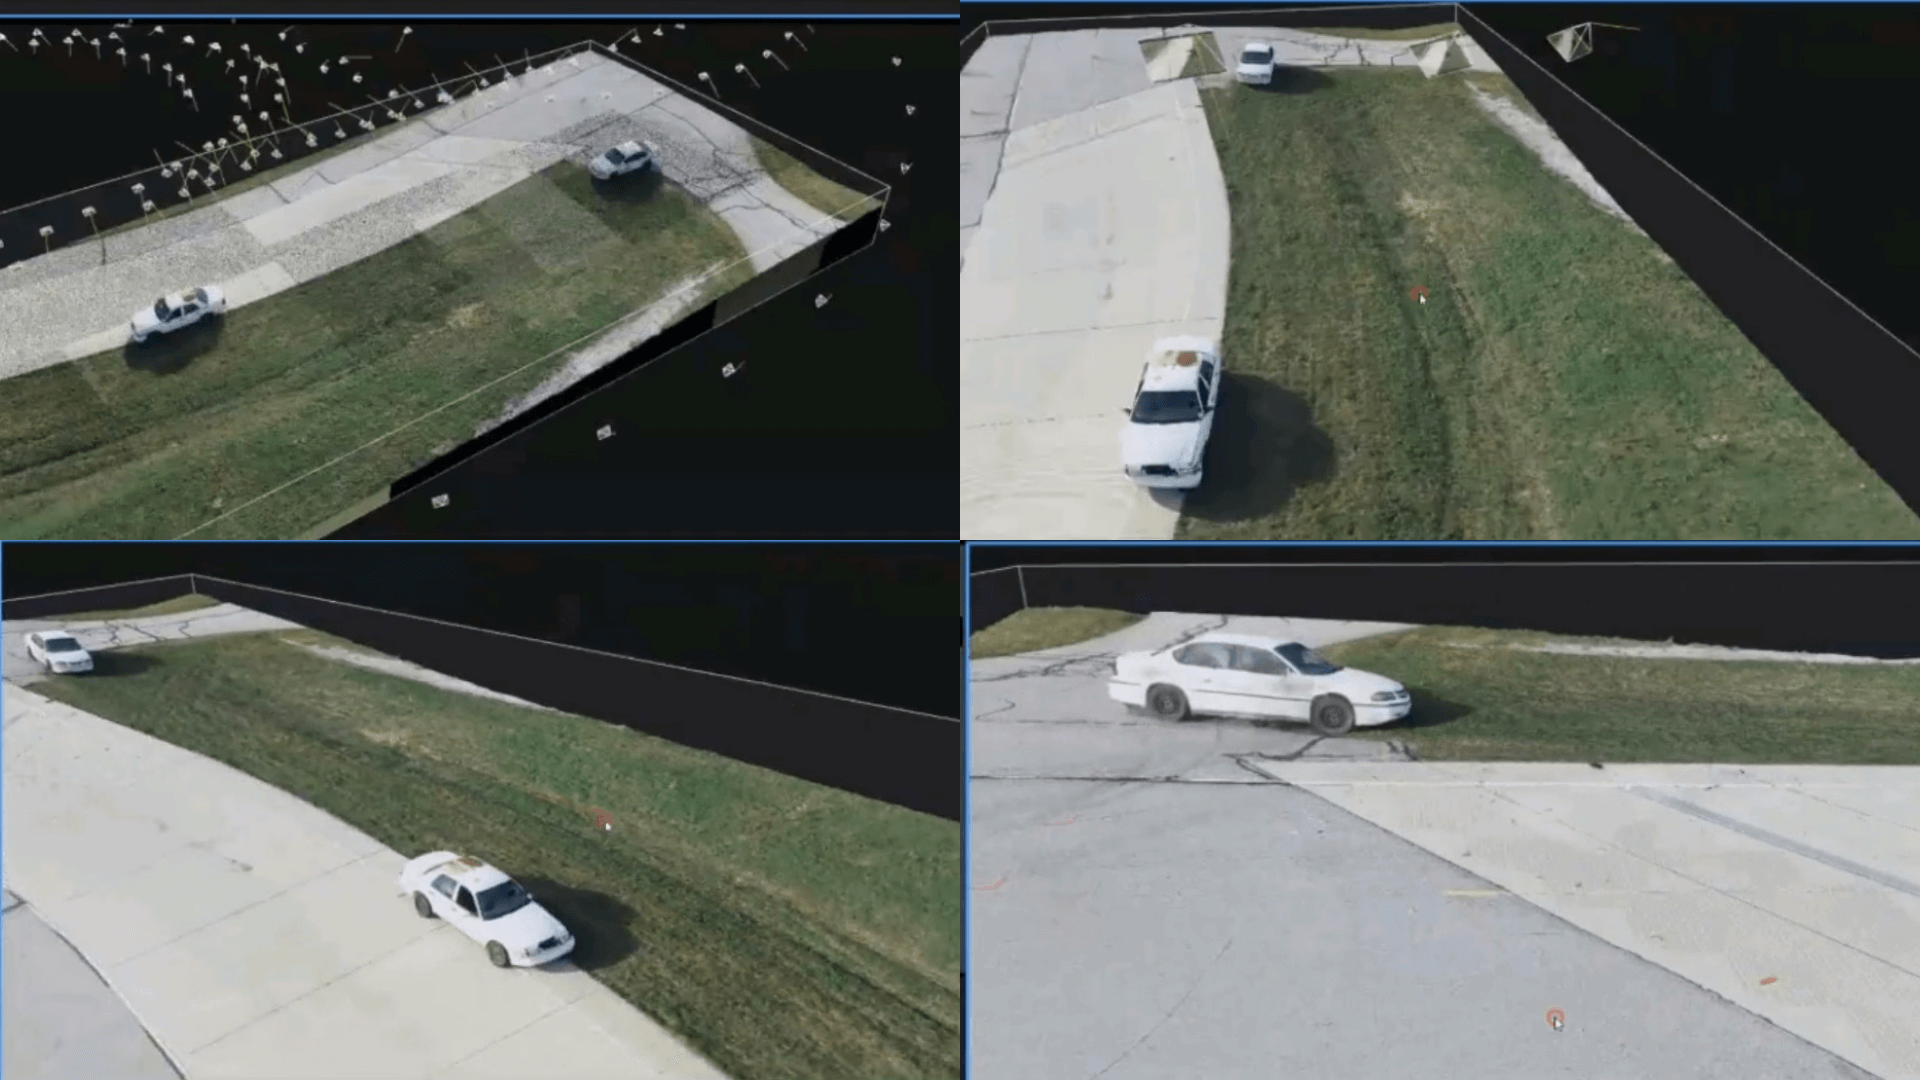 Texturing a point cloud transforms it into a 3D model of a crash scene.